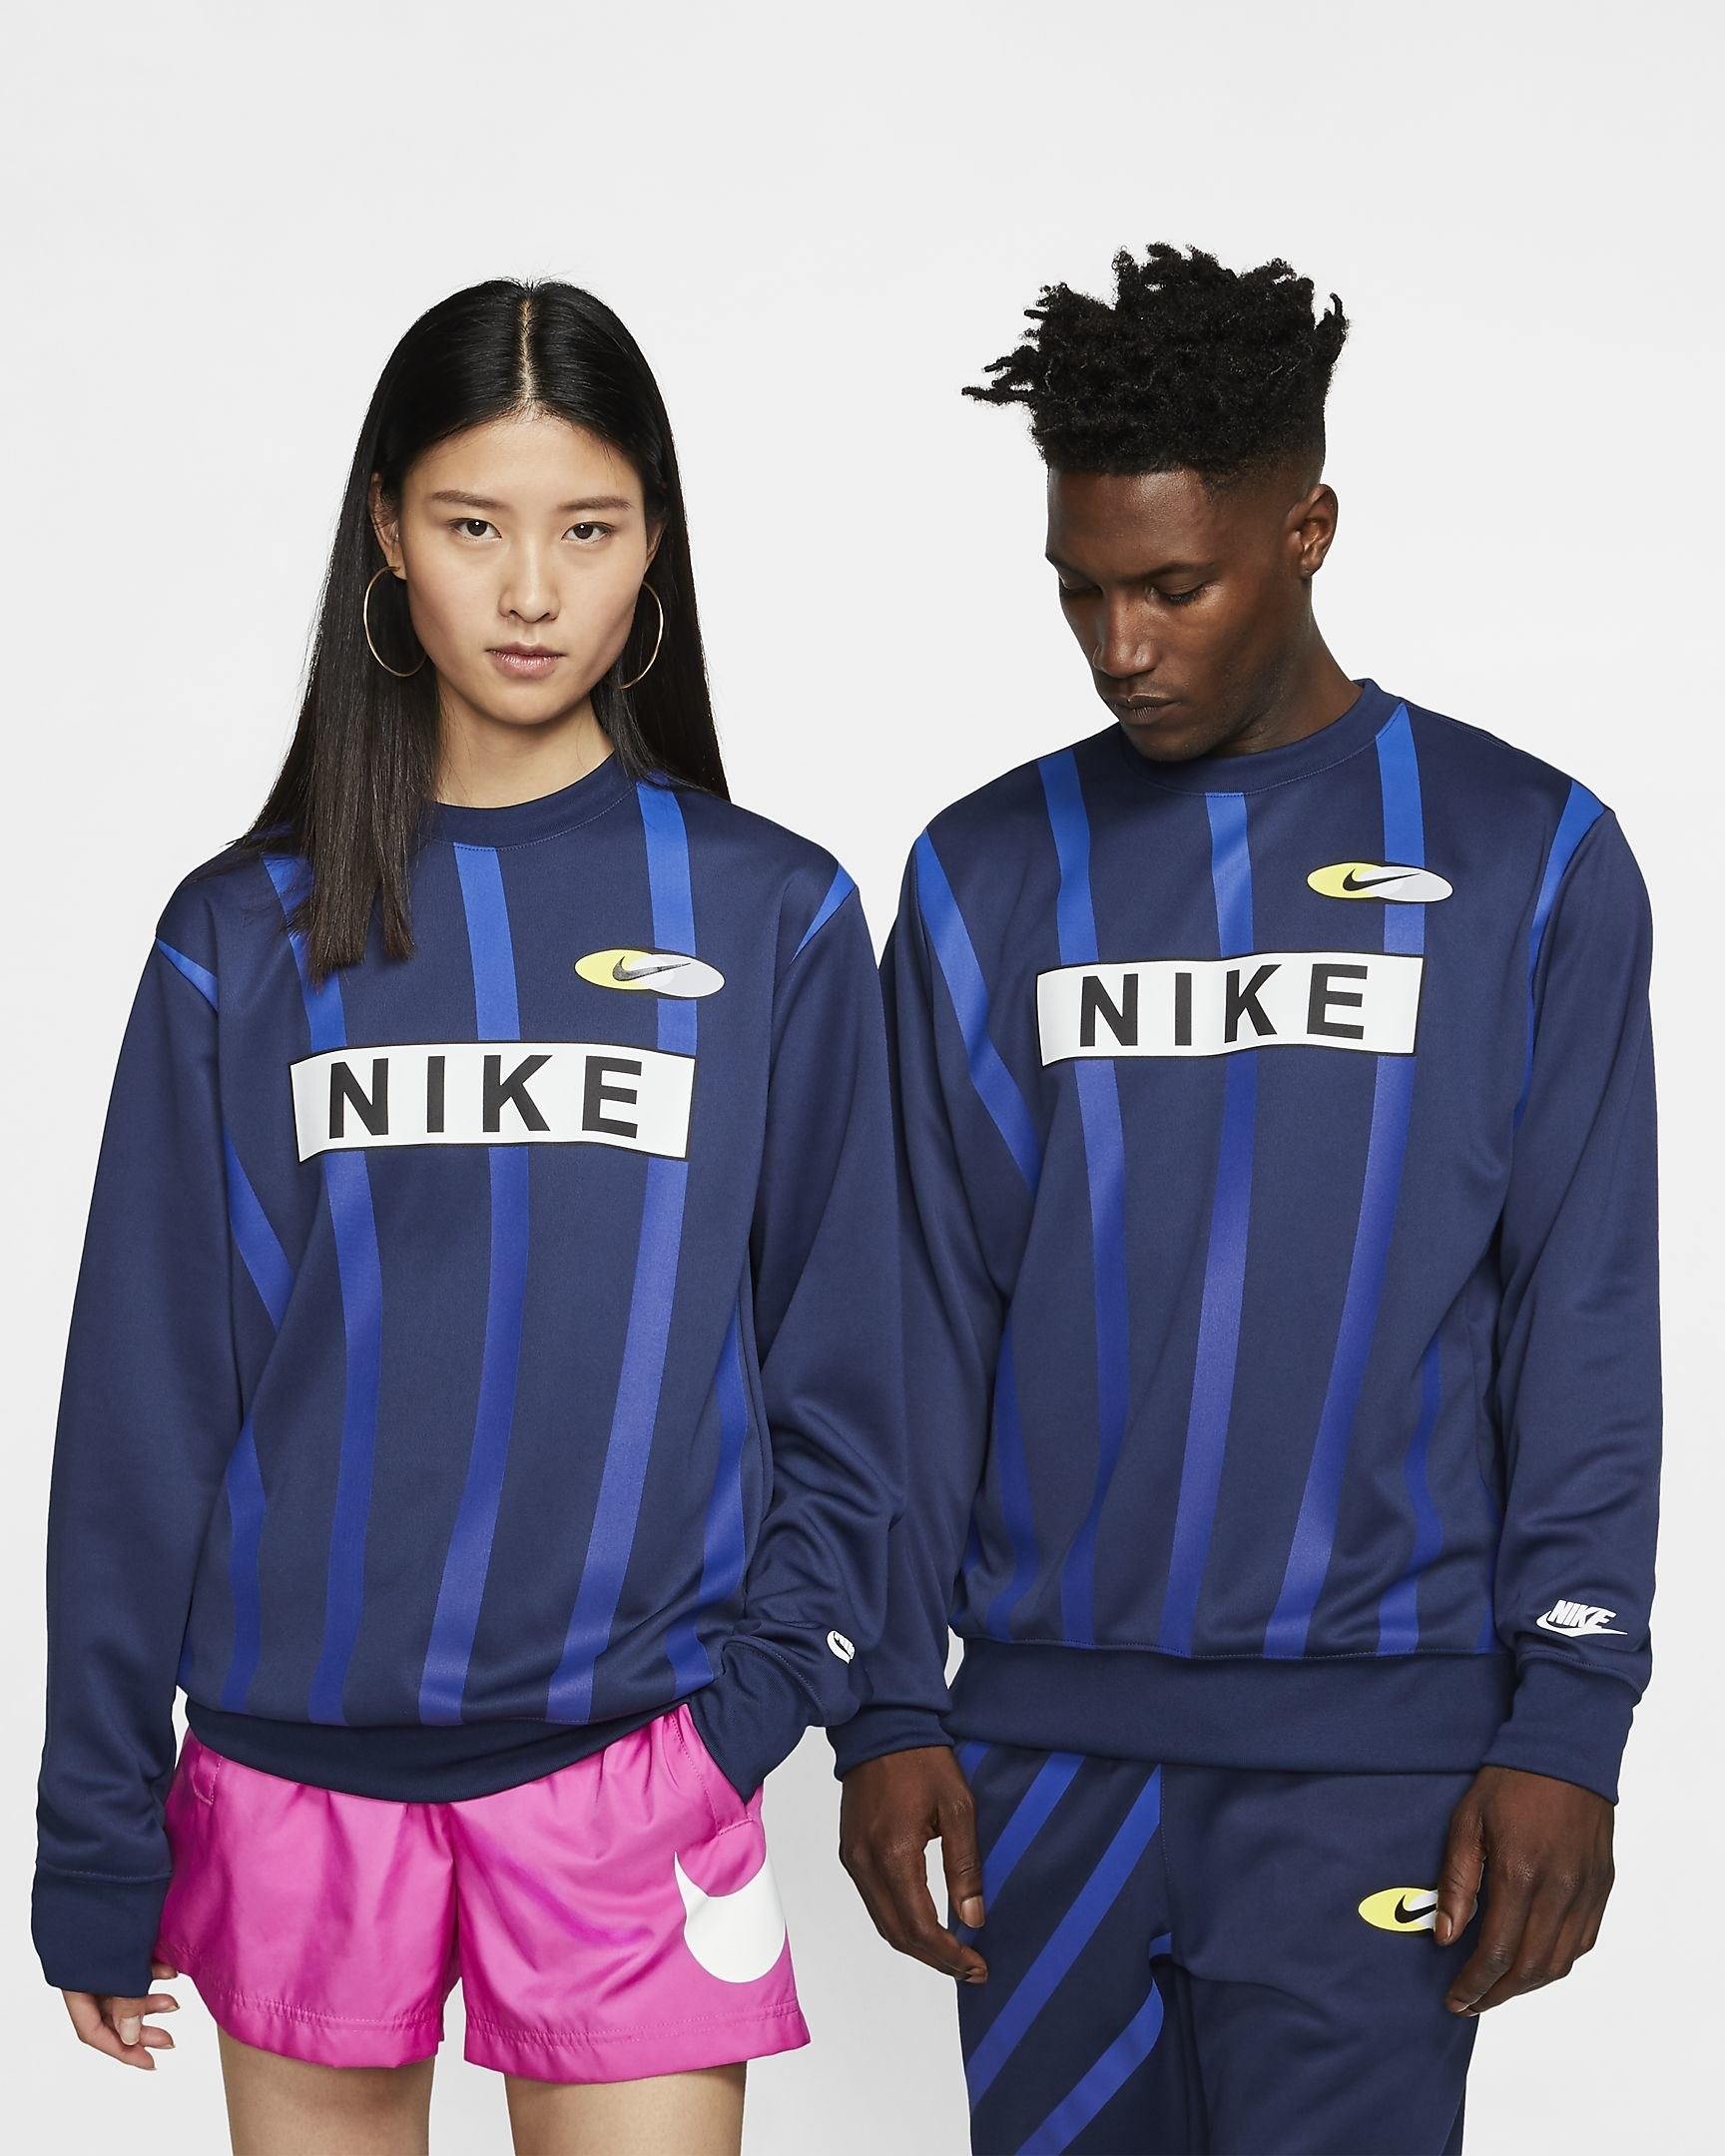 Two models wearing a navy sweatshirt with blue vertical stripes and large Nike logos